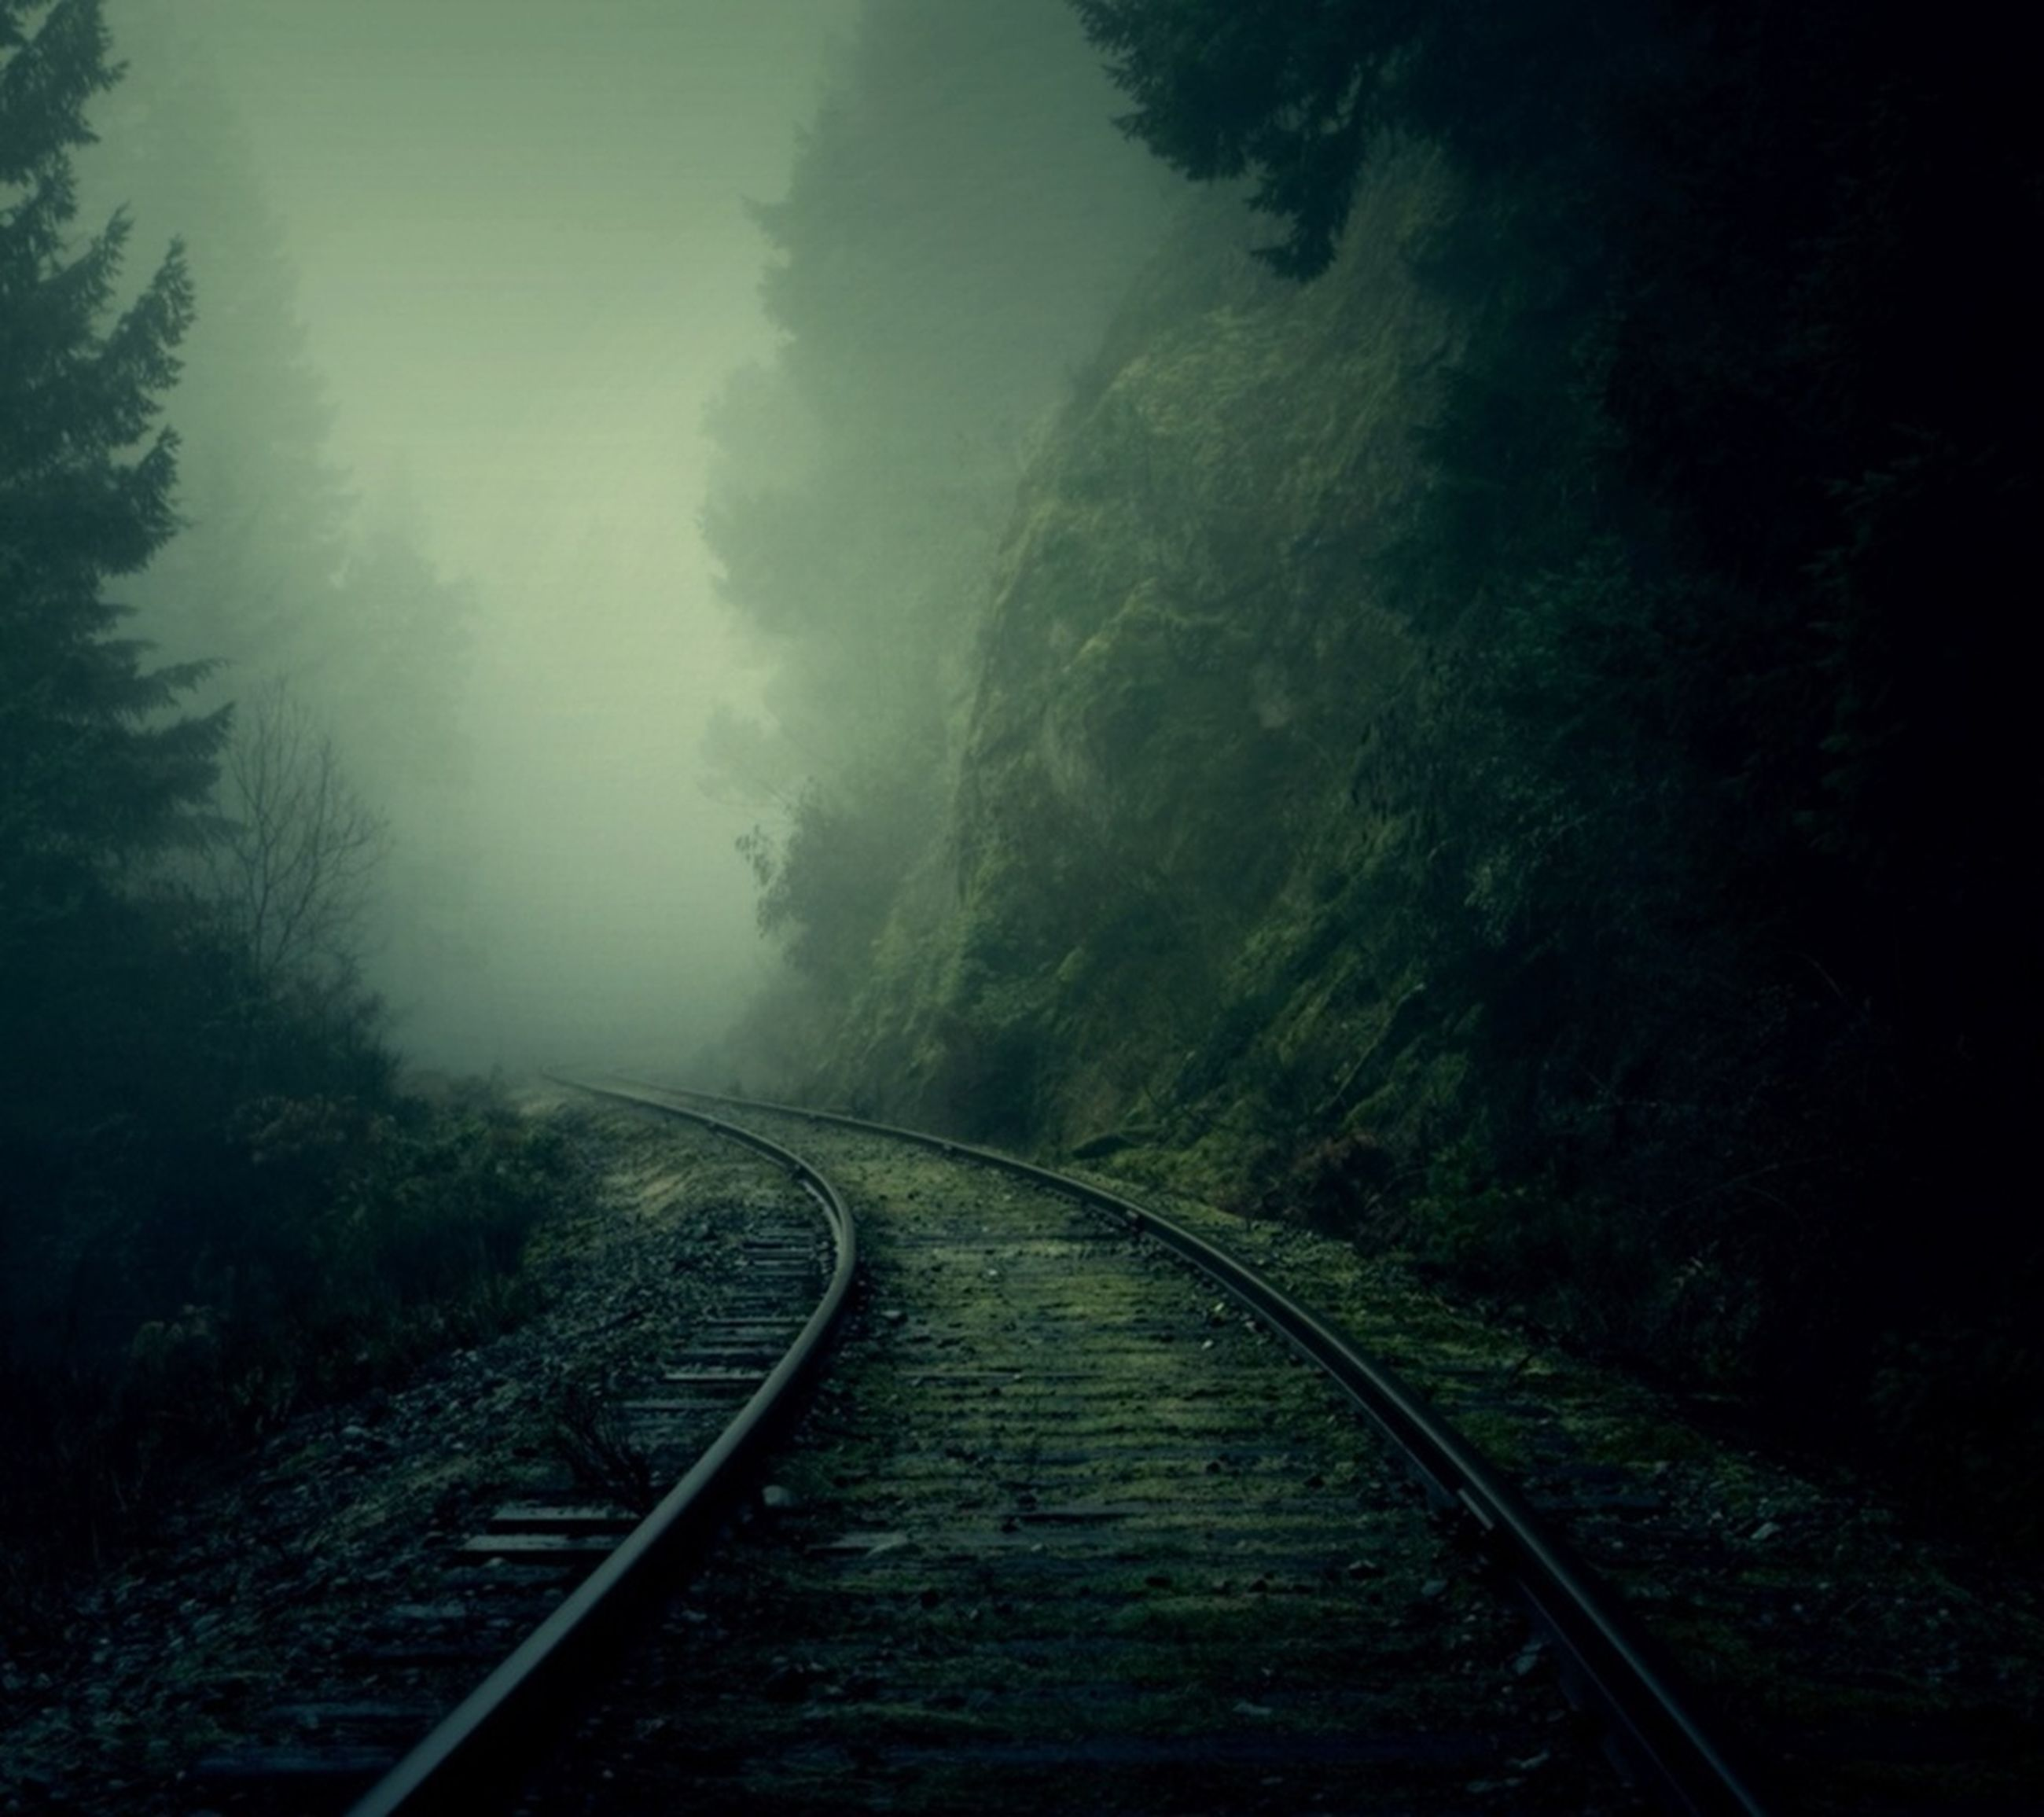 the way forward, railroad track, transportation, diminishing perspective, rail transportation, vanishing point, tree, tranquility, nature, tranquil scene, forest, sky, railing, no people, railway track, outdoors, beauty in nature, mountain, day, empty